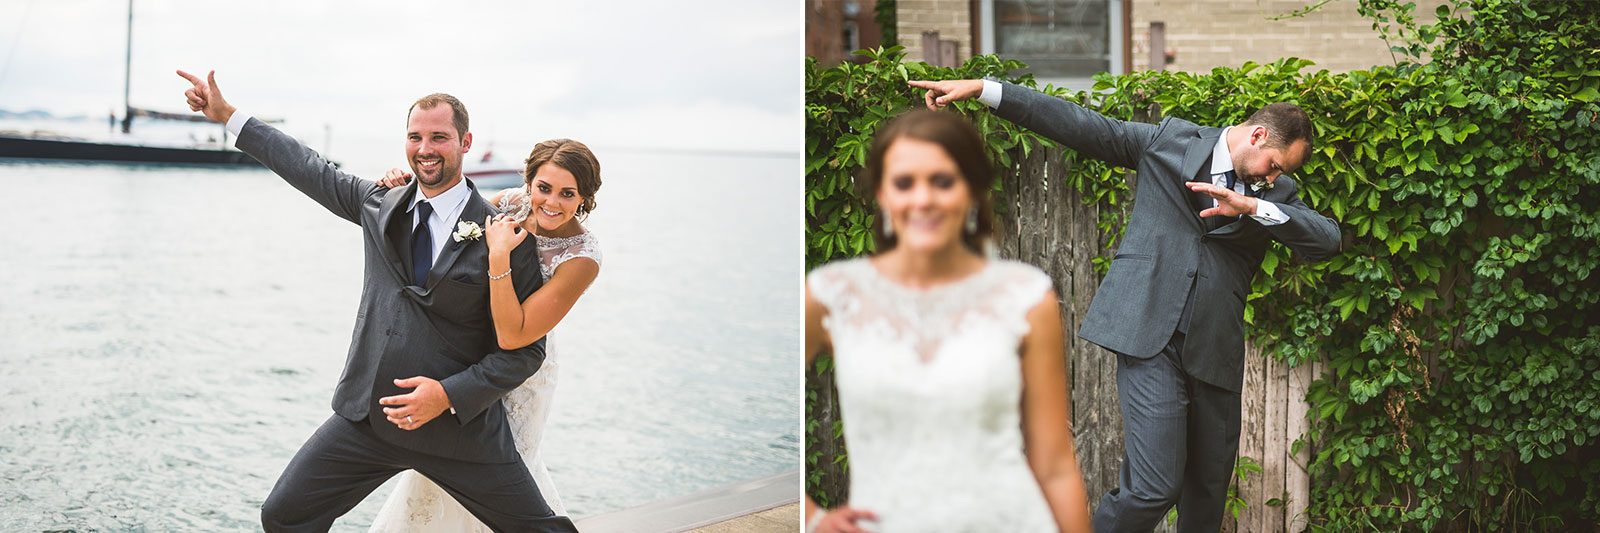 34 fun groom photos